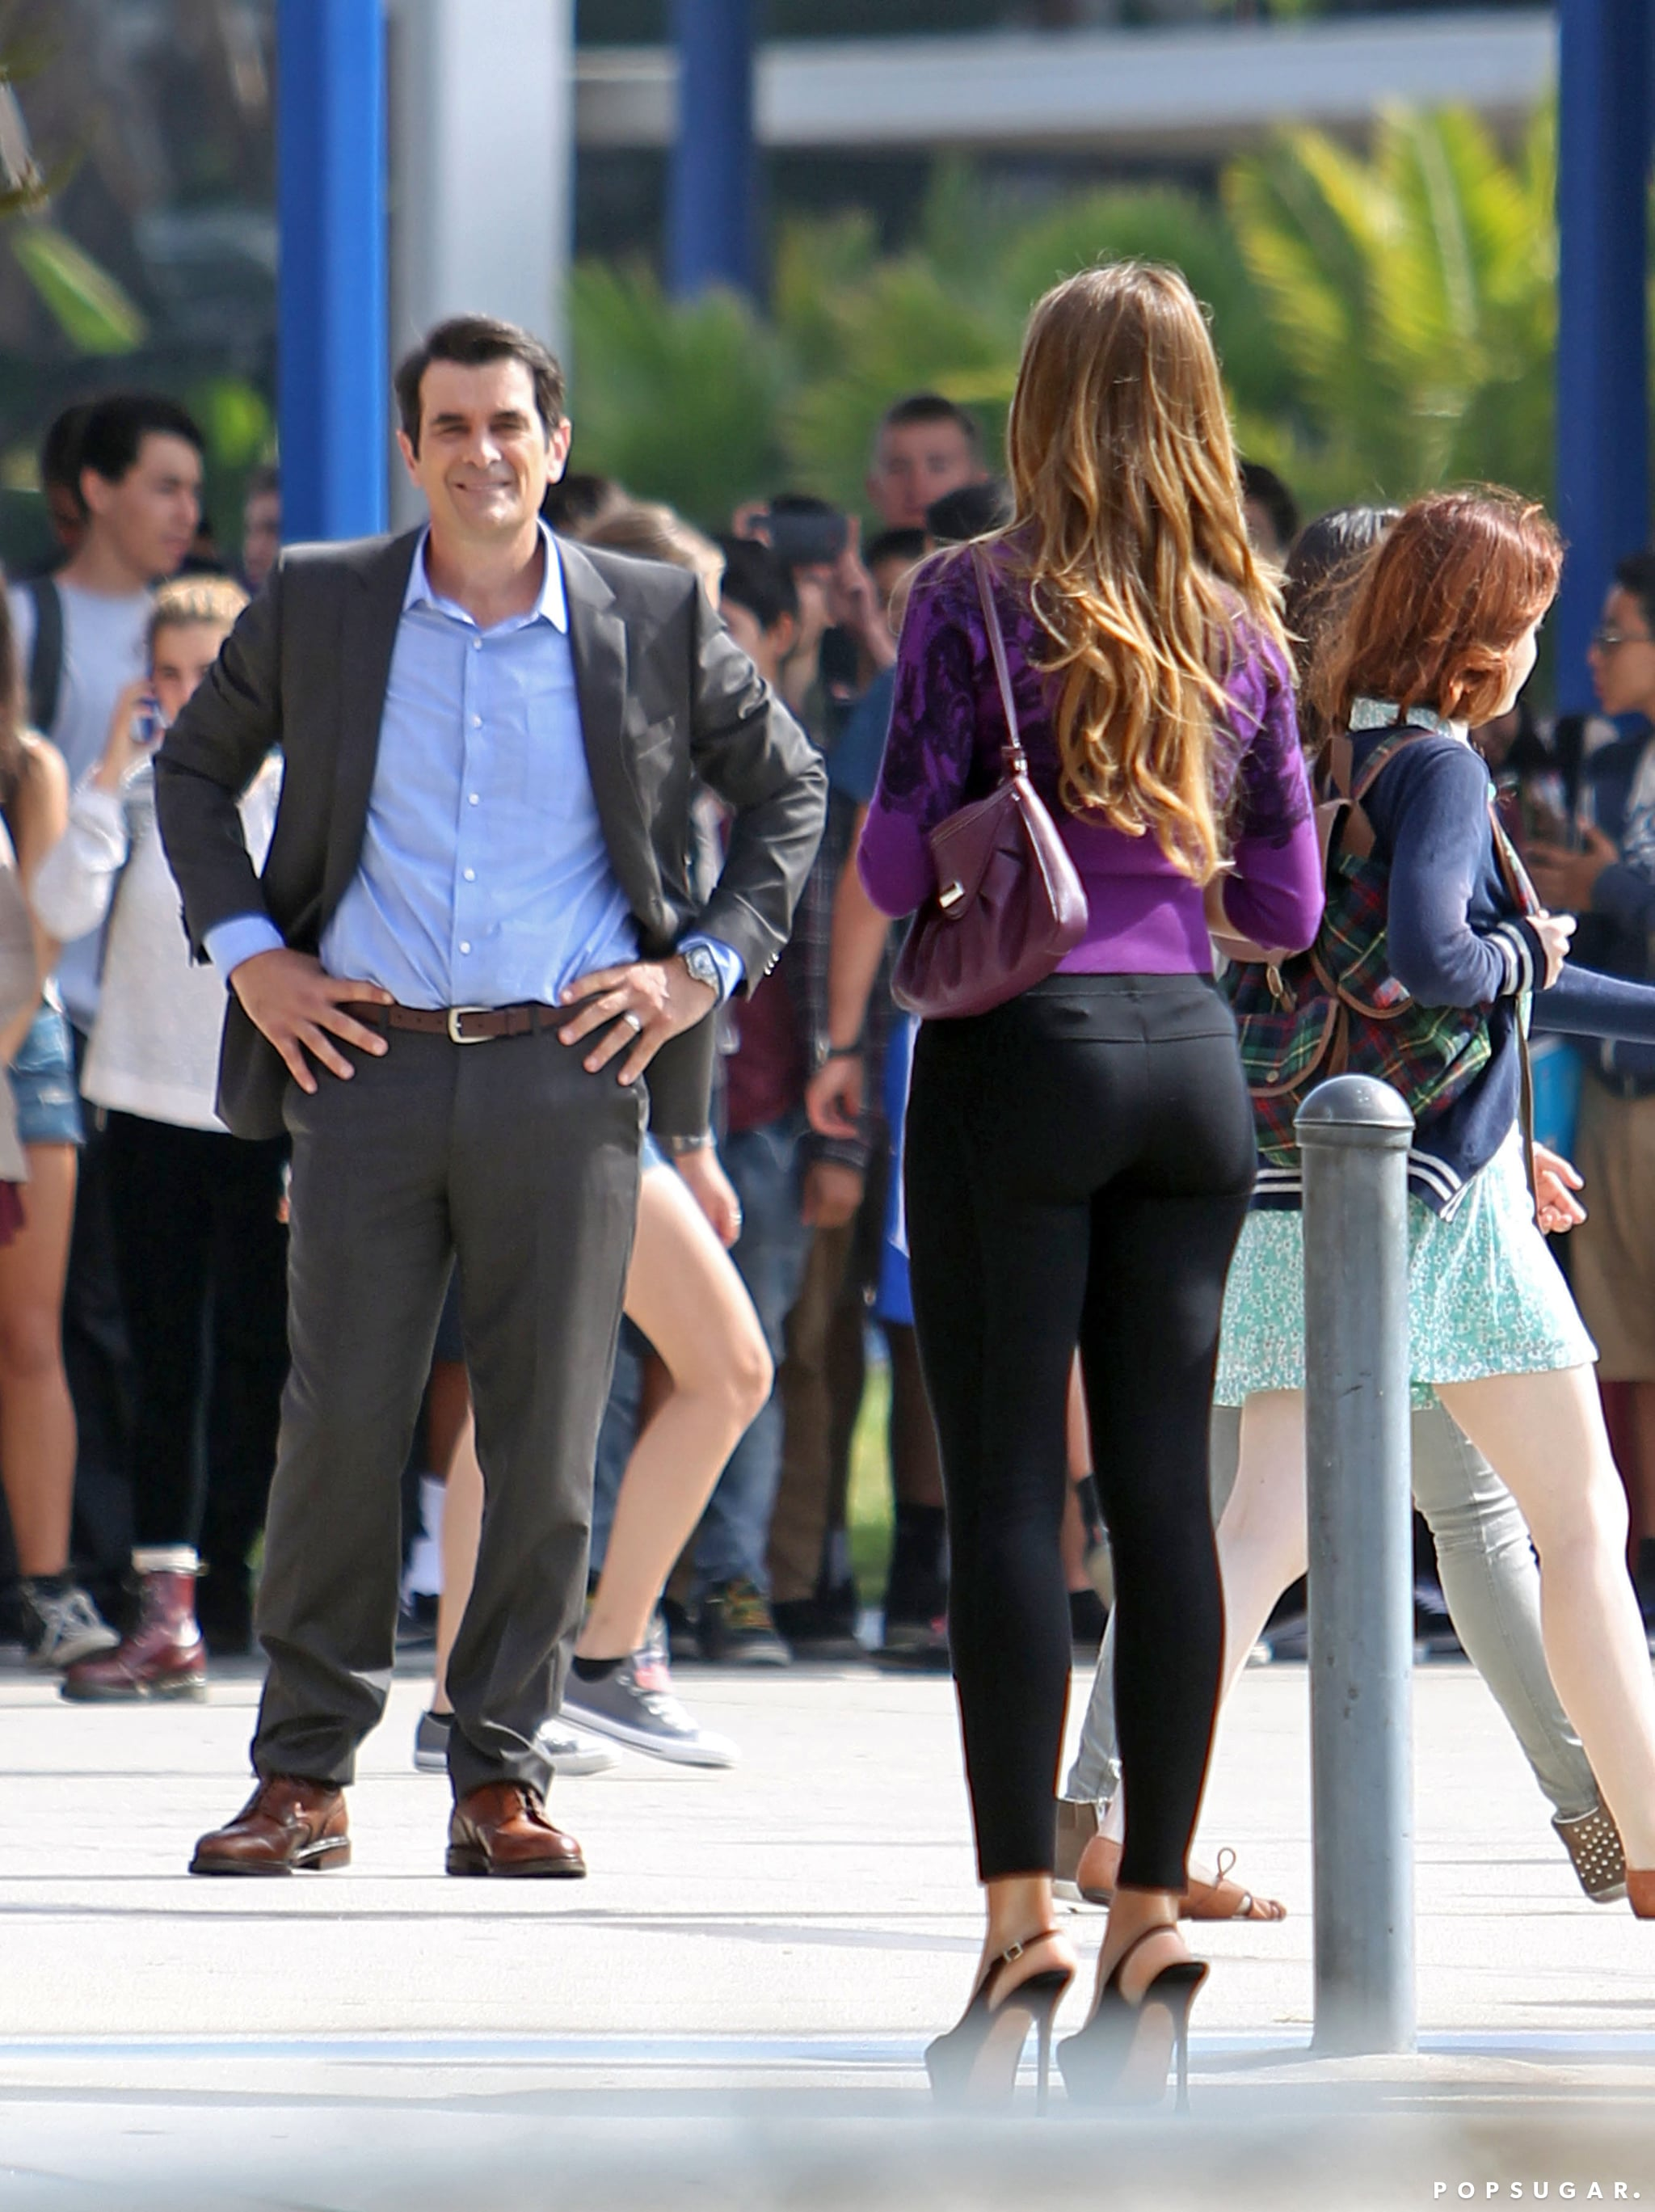 Sofia Vergara wore tight black pants to film a scene with her costar Ty Burrell.